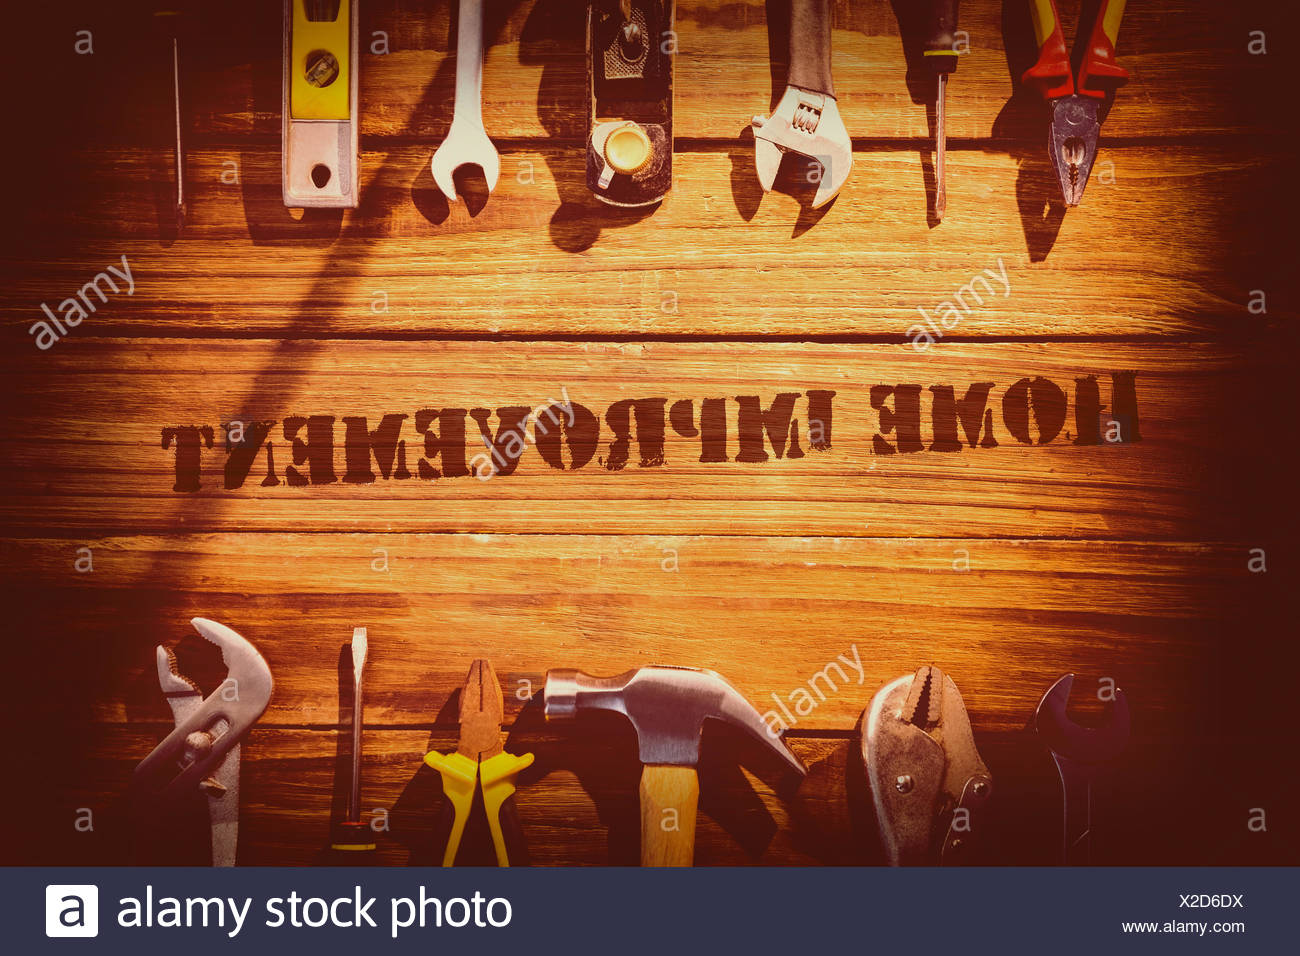 Home improvement against desk with tools - Stock Image